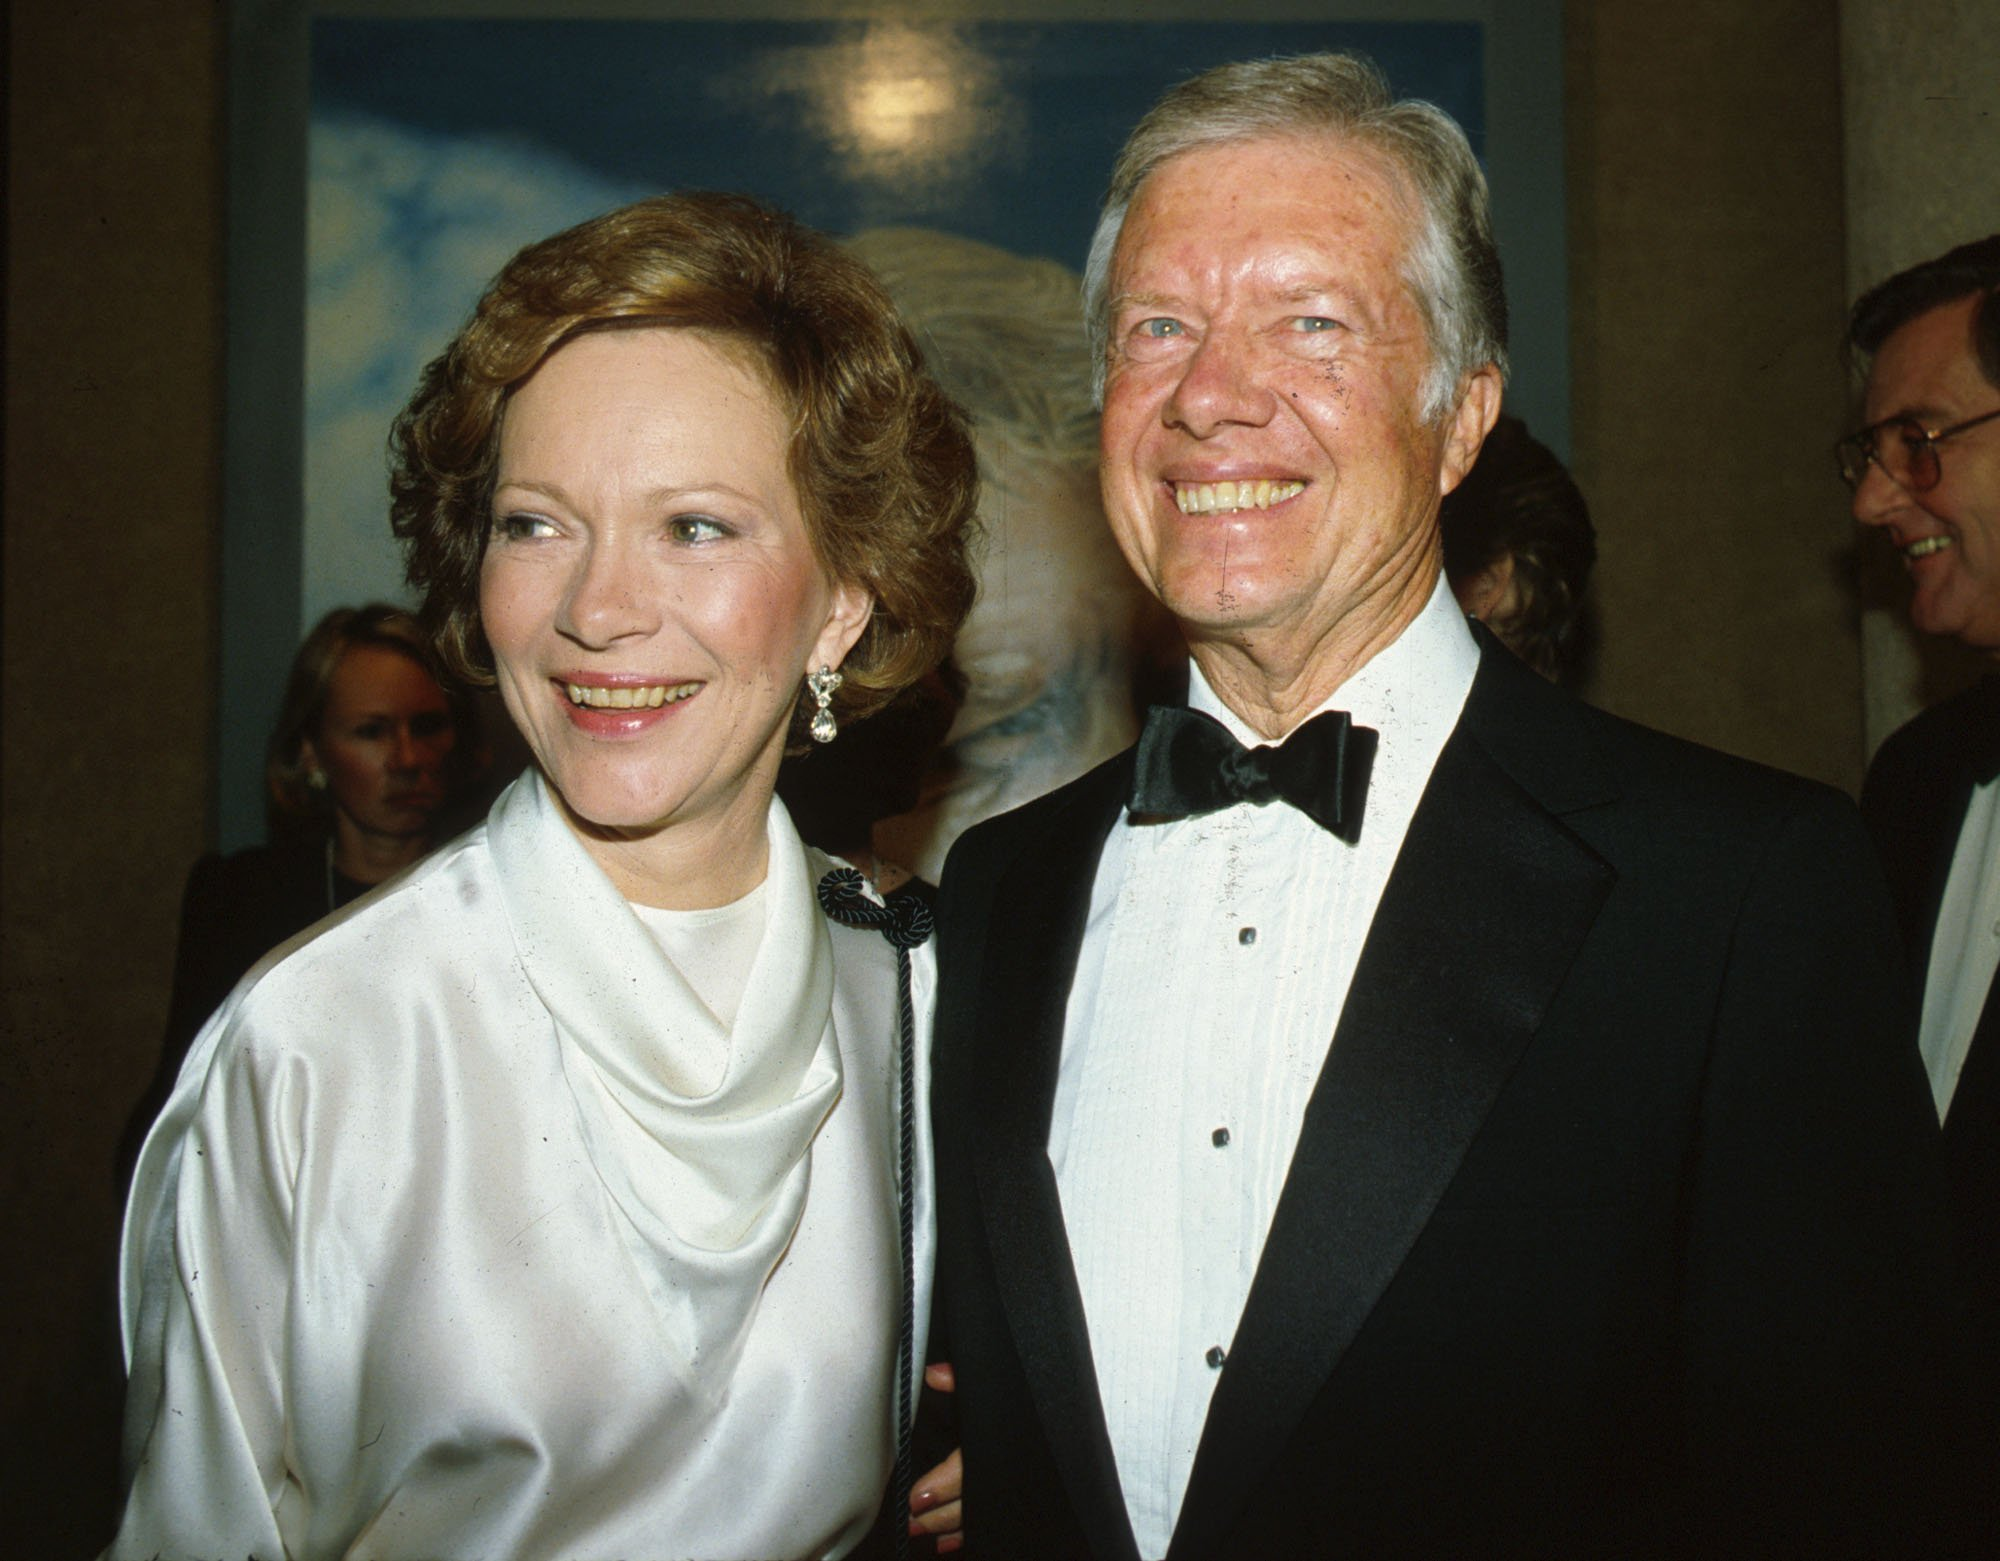 Jimmy and Rosalynn Carter in New York City, NY, October 4, 1983. | Source: Getty Images.